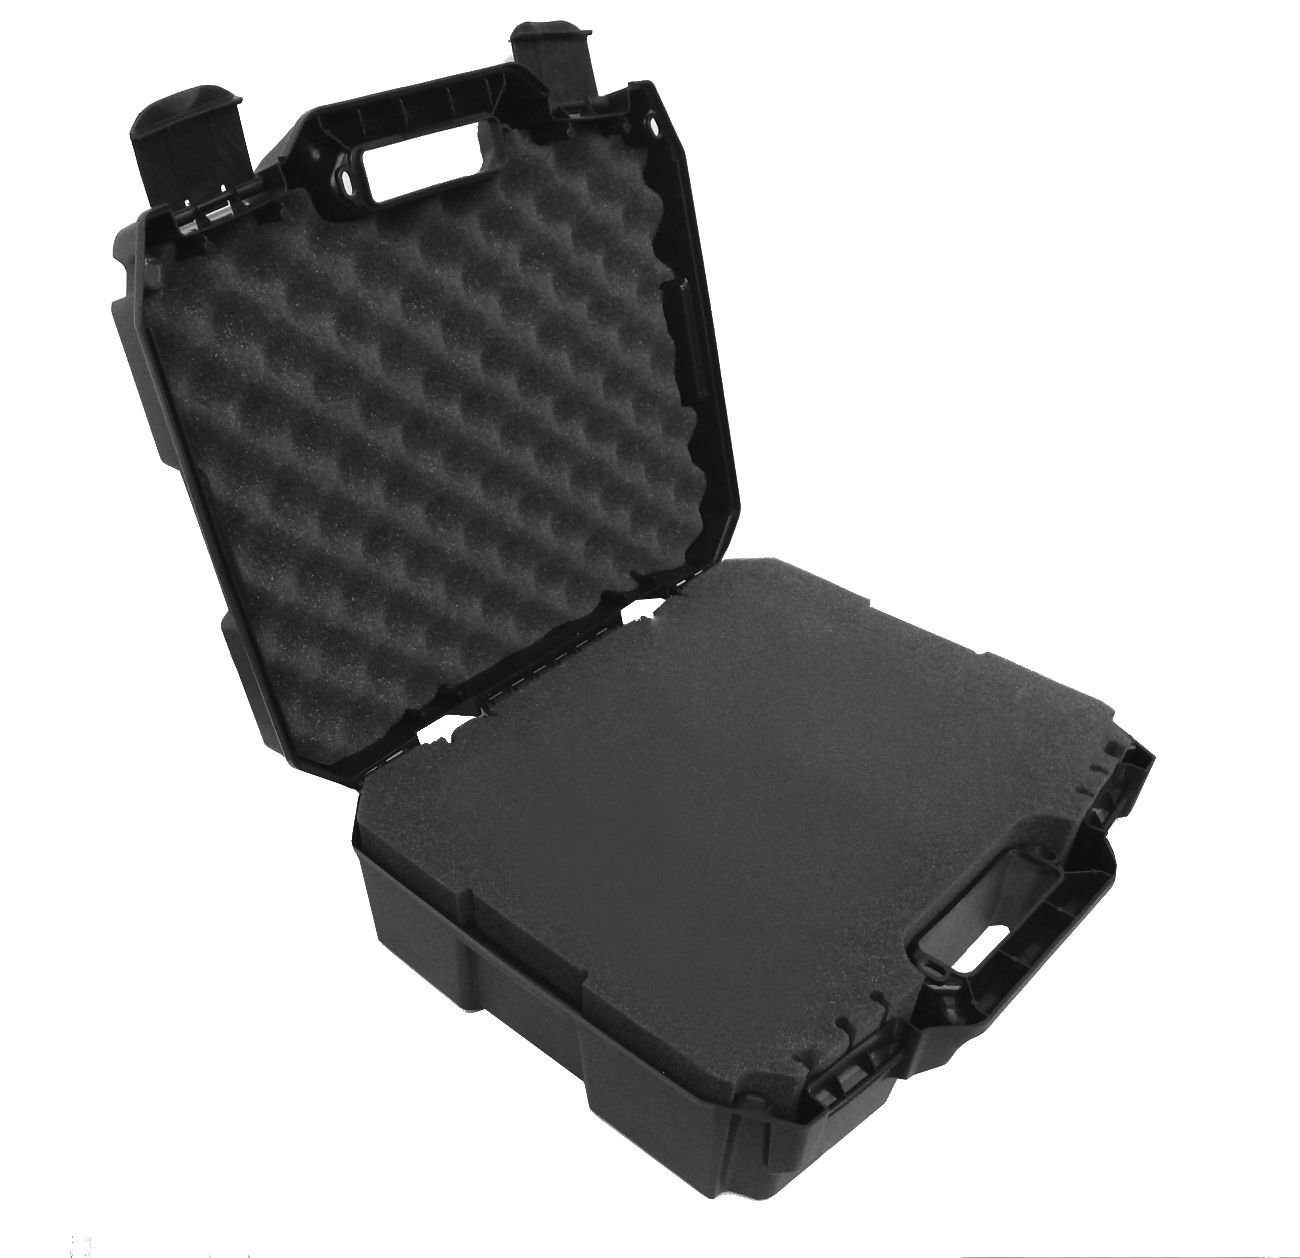 CASEMATIX Rugged XL Drone Case With Customizable Foam Fits DJI Mavic Air Fly More Combo and Mavic Air Accessories Such as Remote Control , Extra Batteries , Charger , Propellers and More